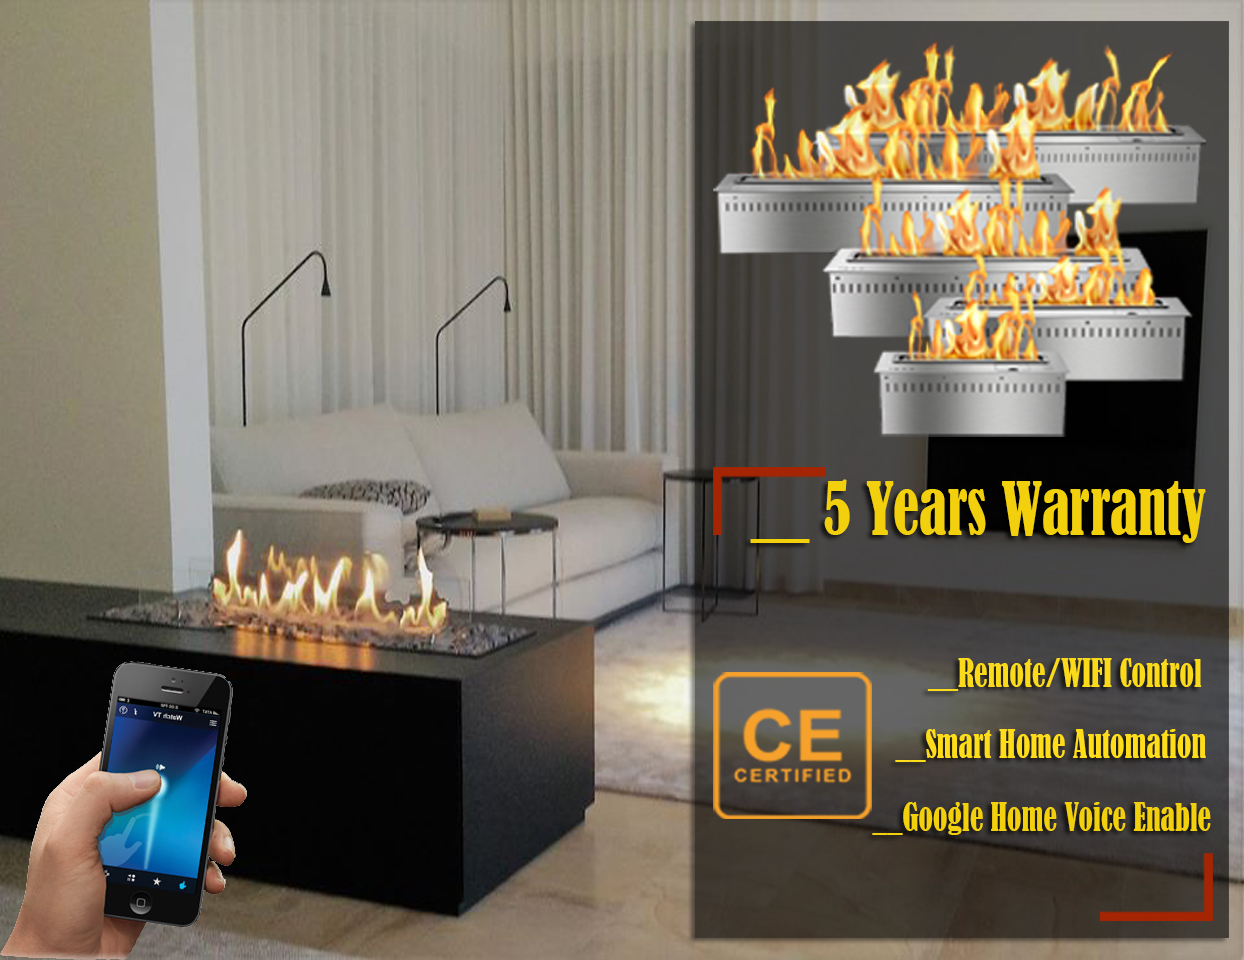 Hot Sale 36 Inches Ethanol Fire Ventless Fireplace Insert With Remote Control